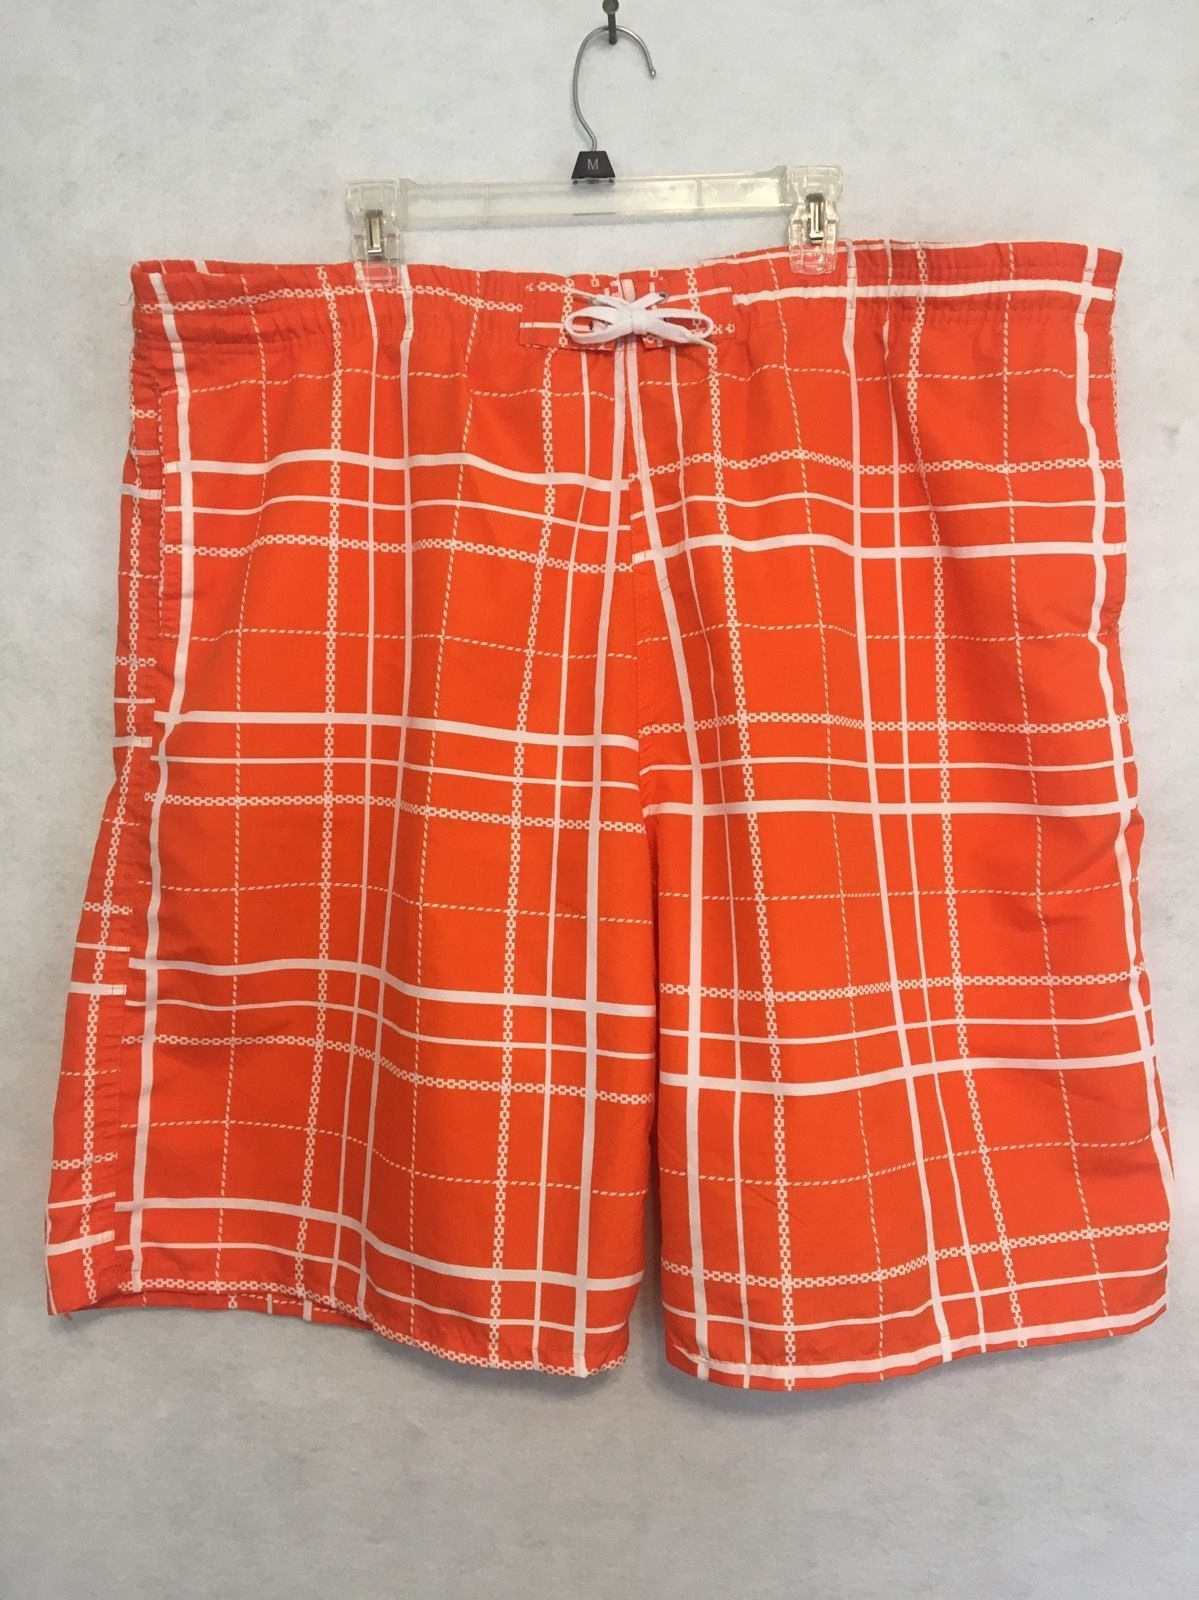 86b5b8fcf2 Nbn Gear Orange White Cargo Swim Trunks Mens and 50 similar items